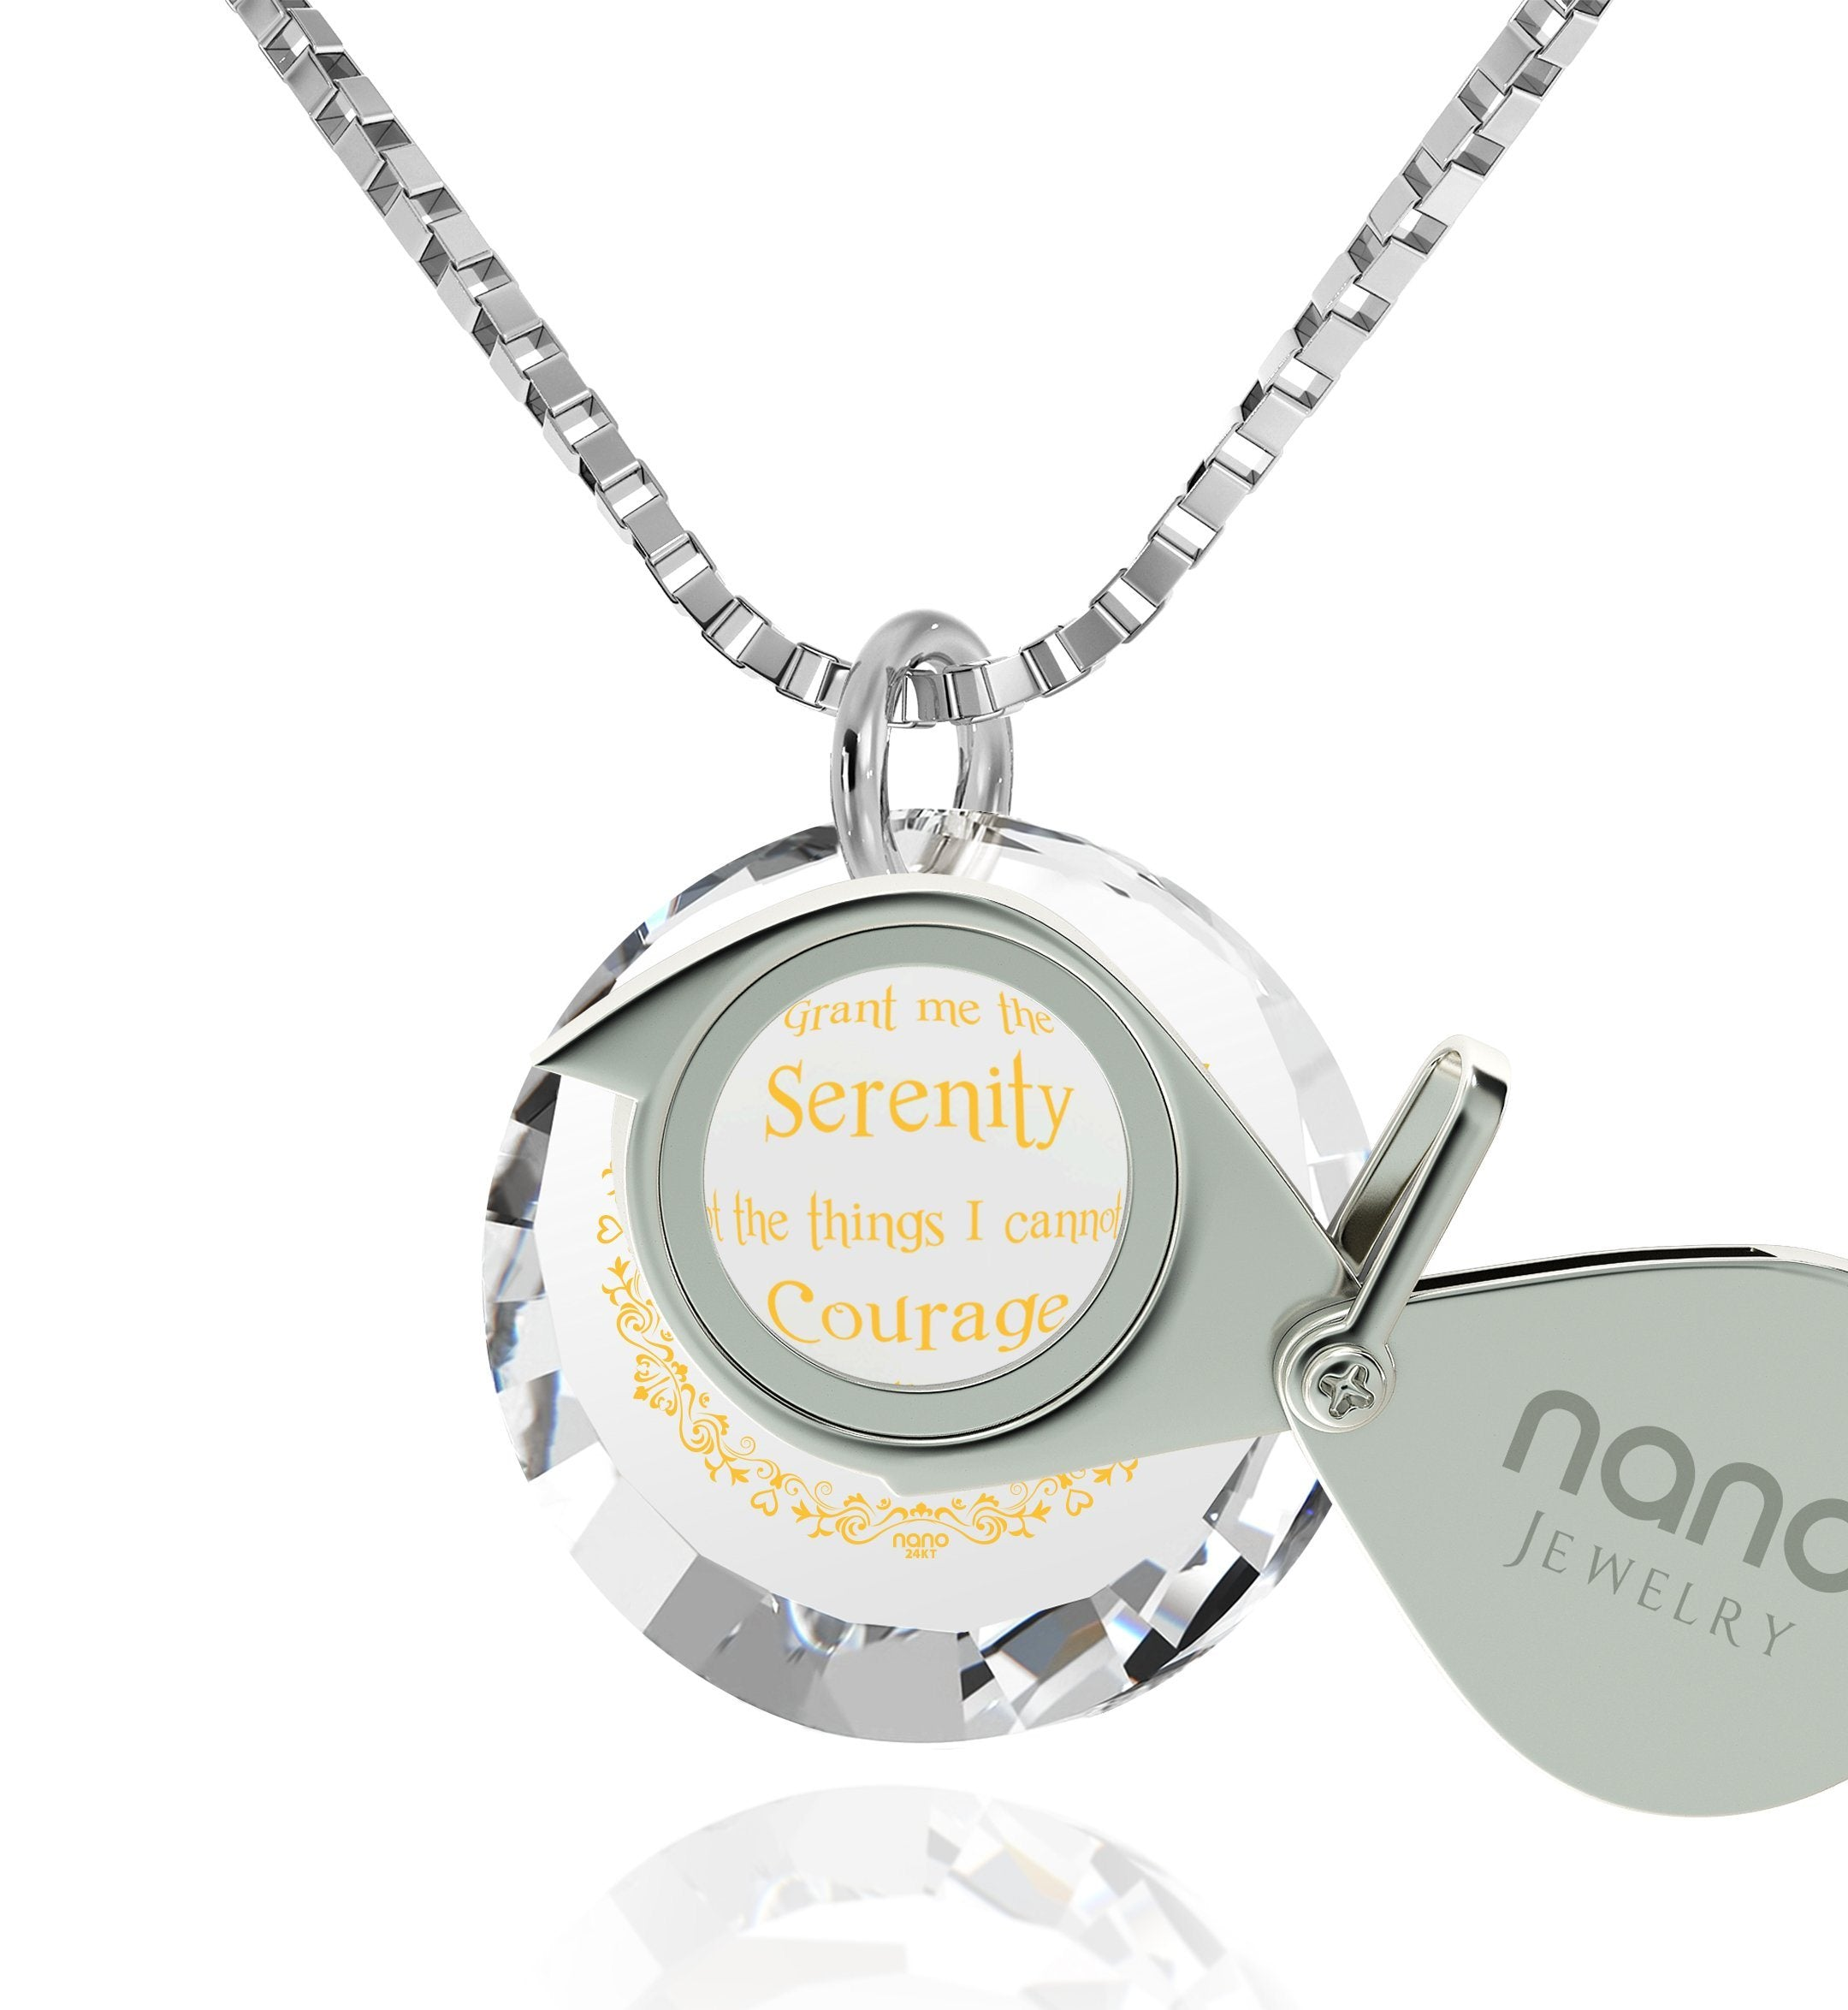 product serenity prayer necklace nordstrom rack of shop image